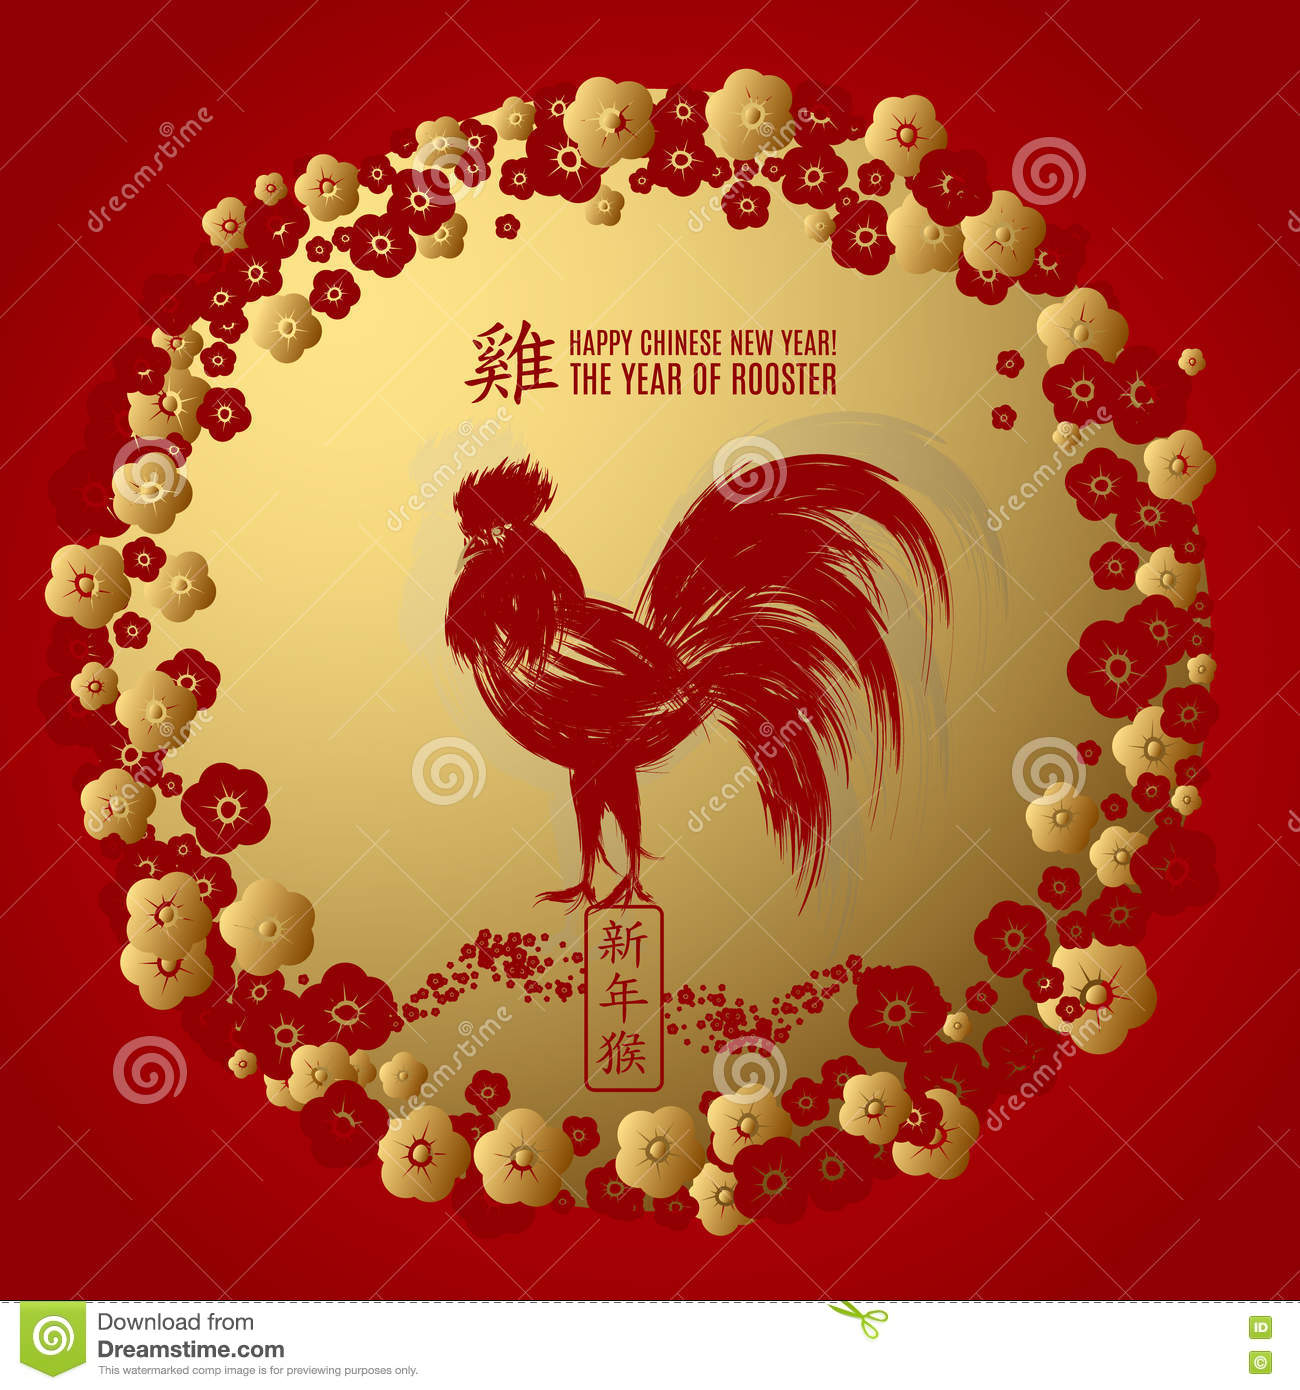 rooster new year border